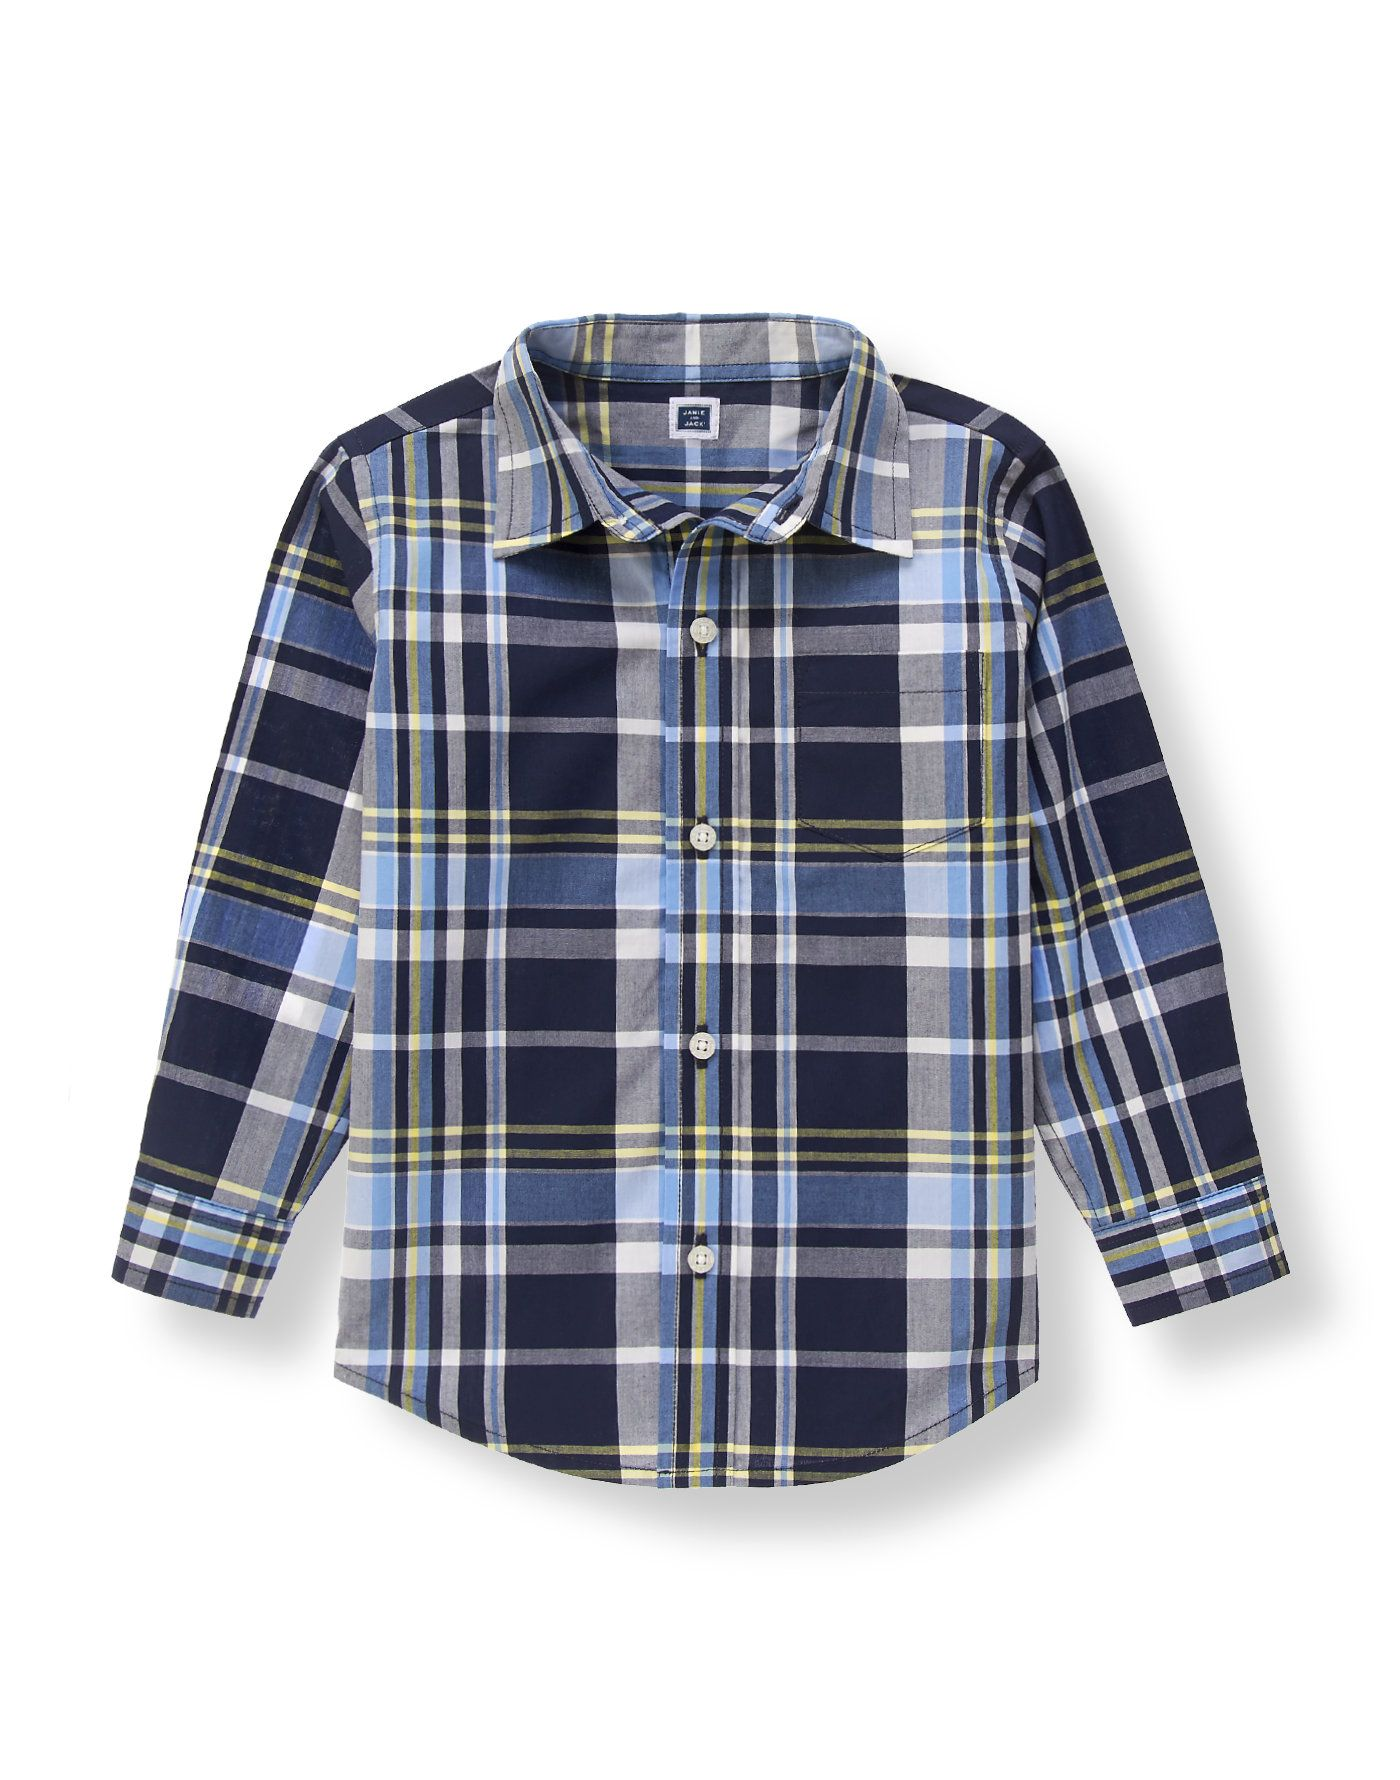 Poplin shirt in handsome plaid is a must-have for your little charmer. Polished style features a chest pocket and center back pleat.